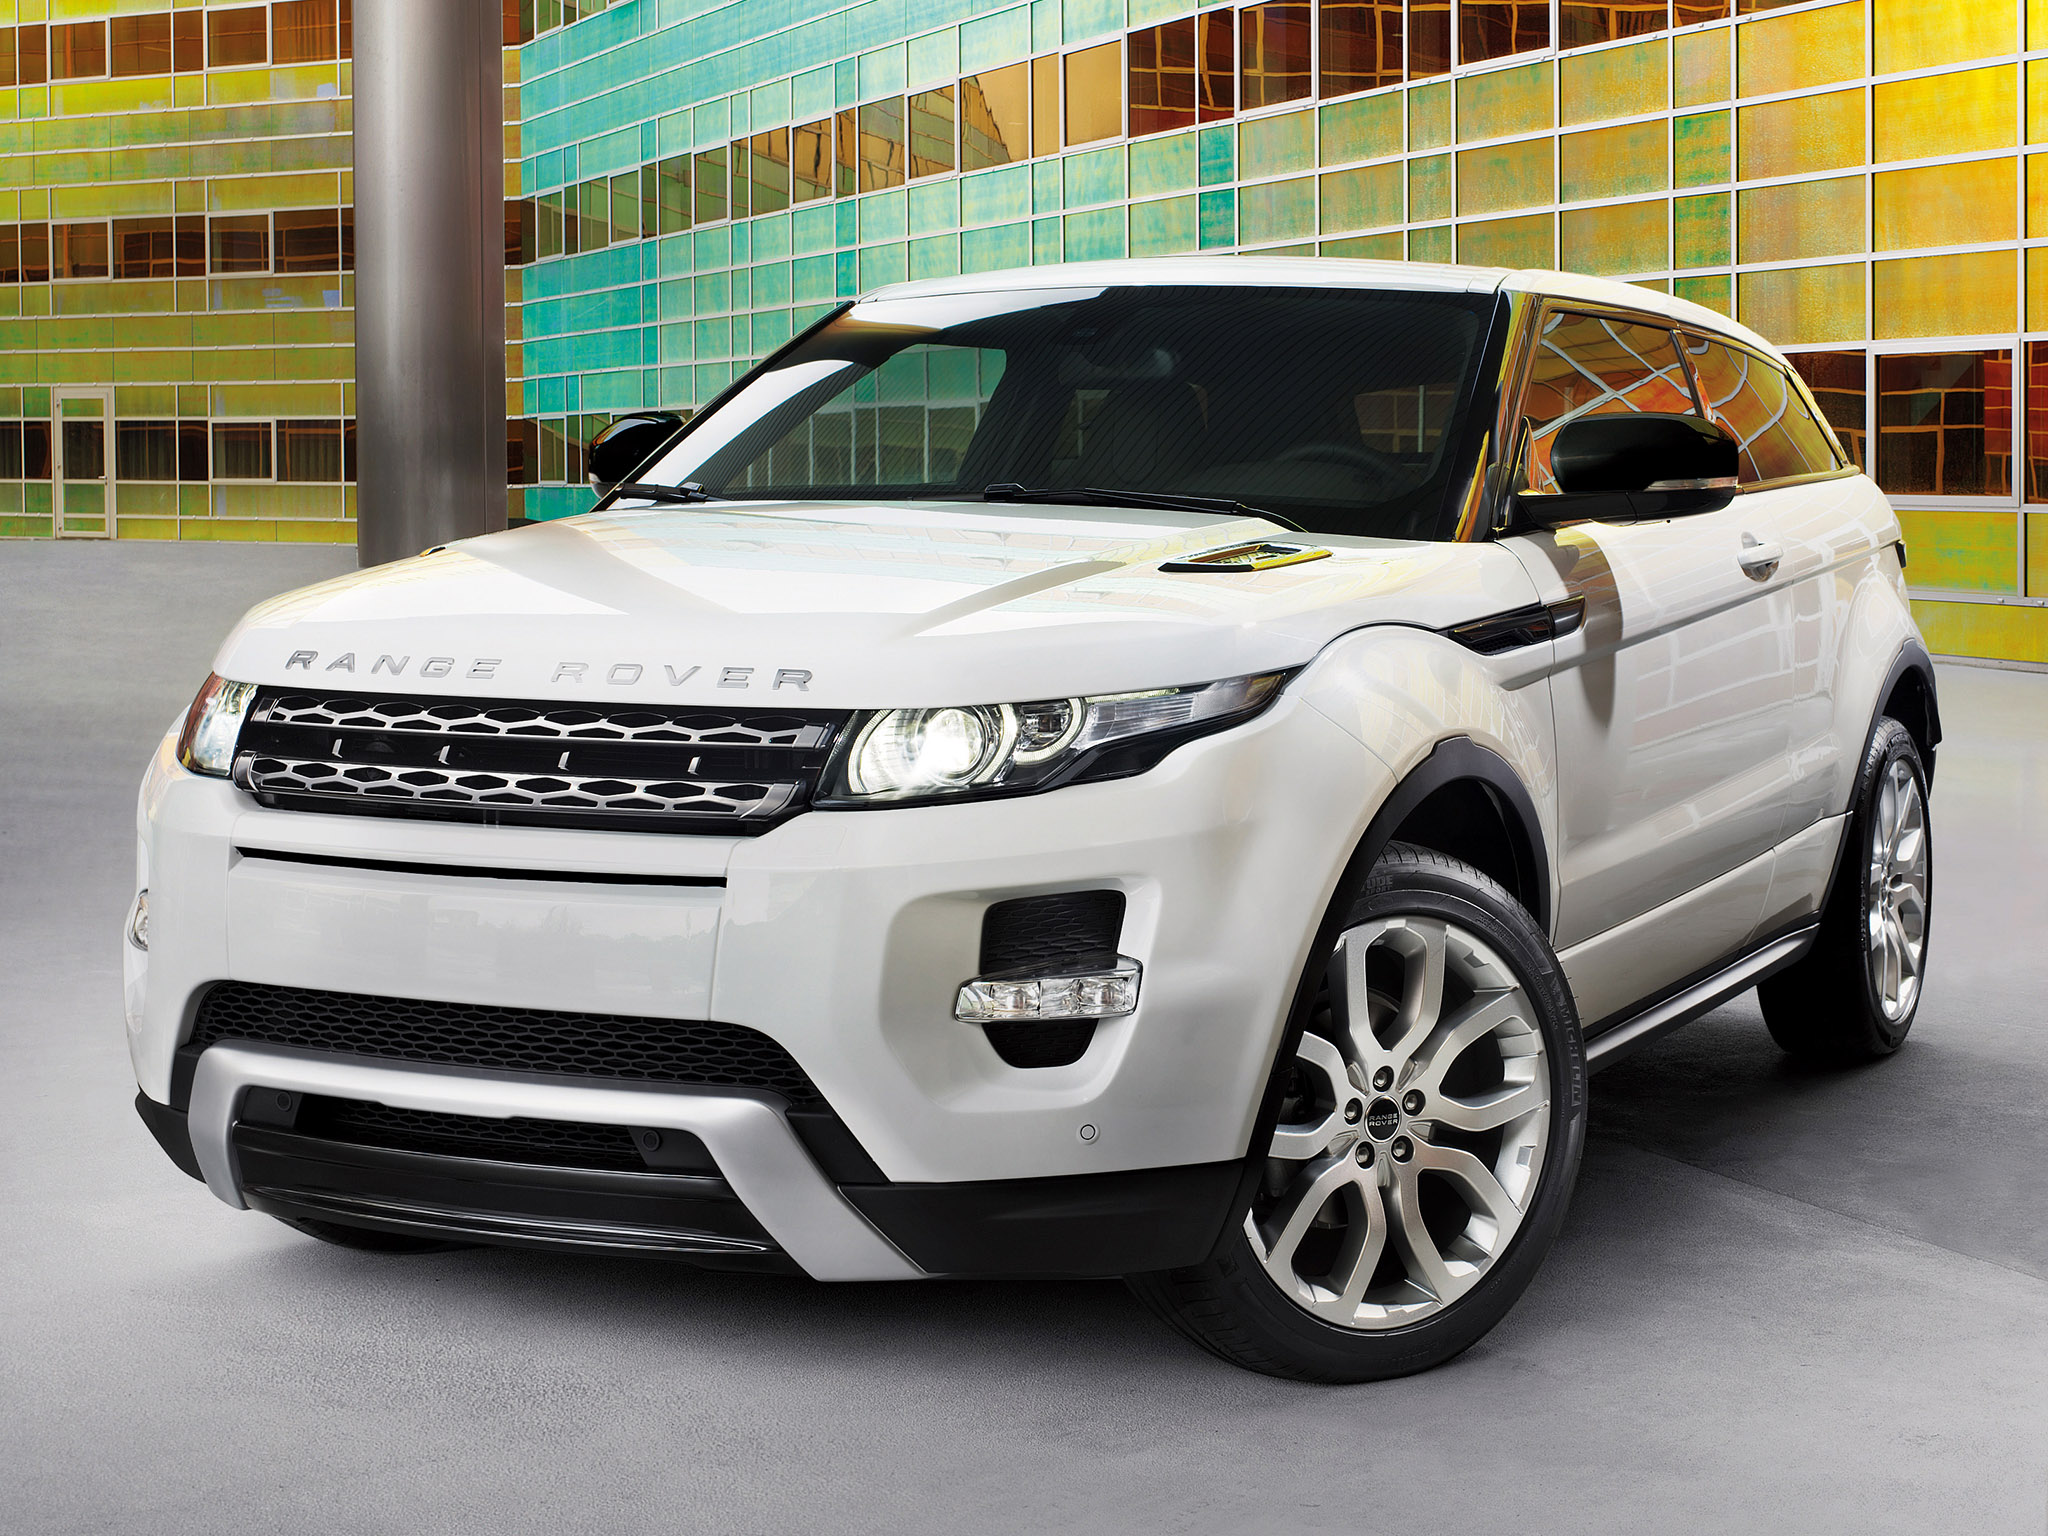 land rover range rover evoque 2010 land rover range rover evoque 2010 photo 20 car in pictures. Black Bedroom Furniture Sets. Home Design Ideas